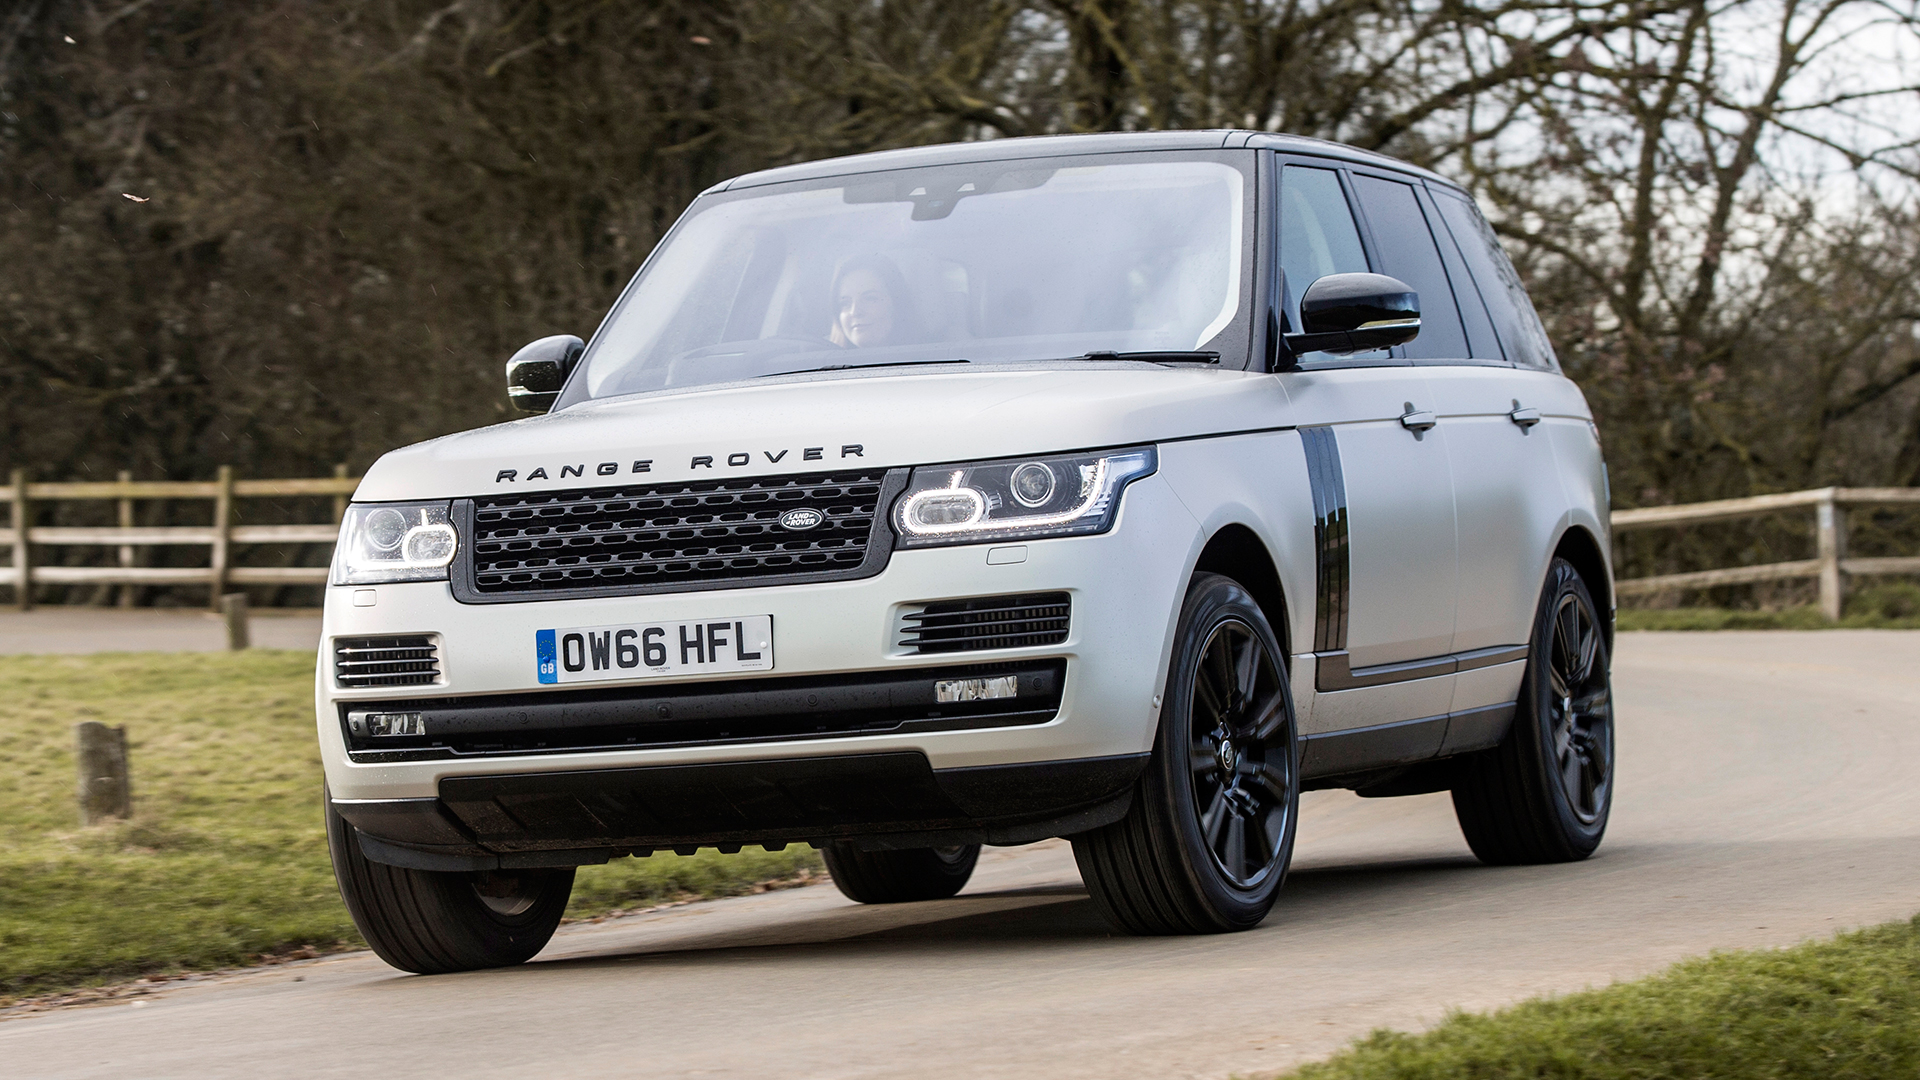 Range Rover A Vendre >> New Used Land Rover Range Rover Cars For Sale Auto Trader